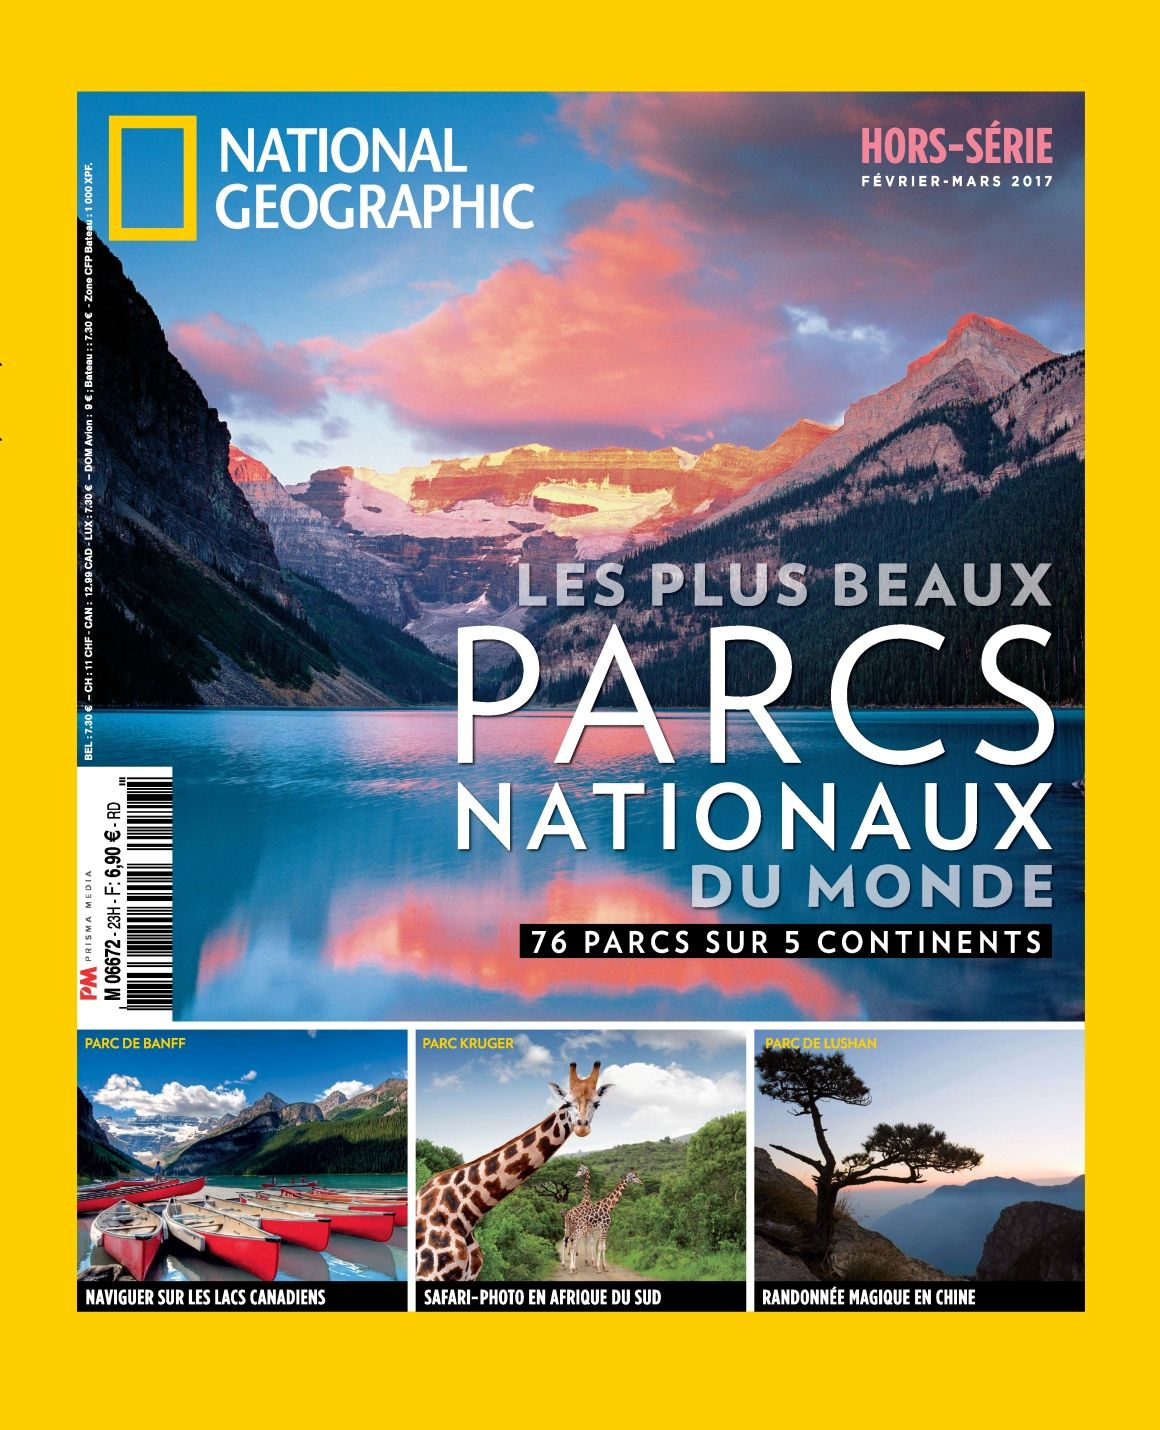 National Geographic France - Hors Série - Collection - N° 23 - Février-Mars 2017